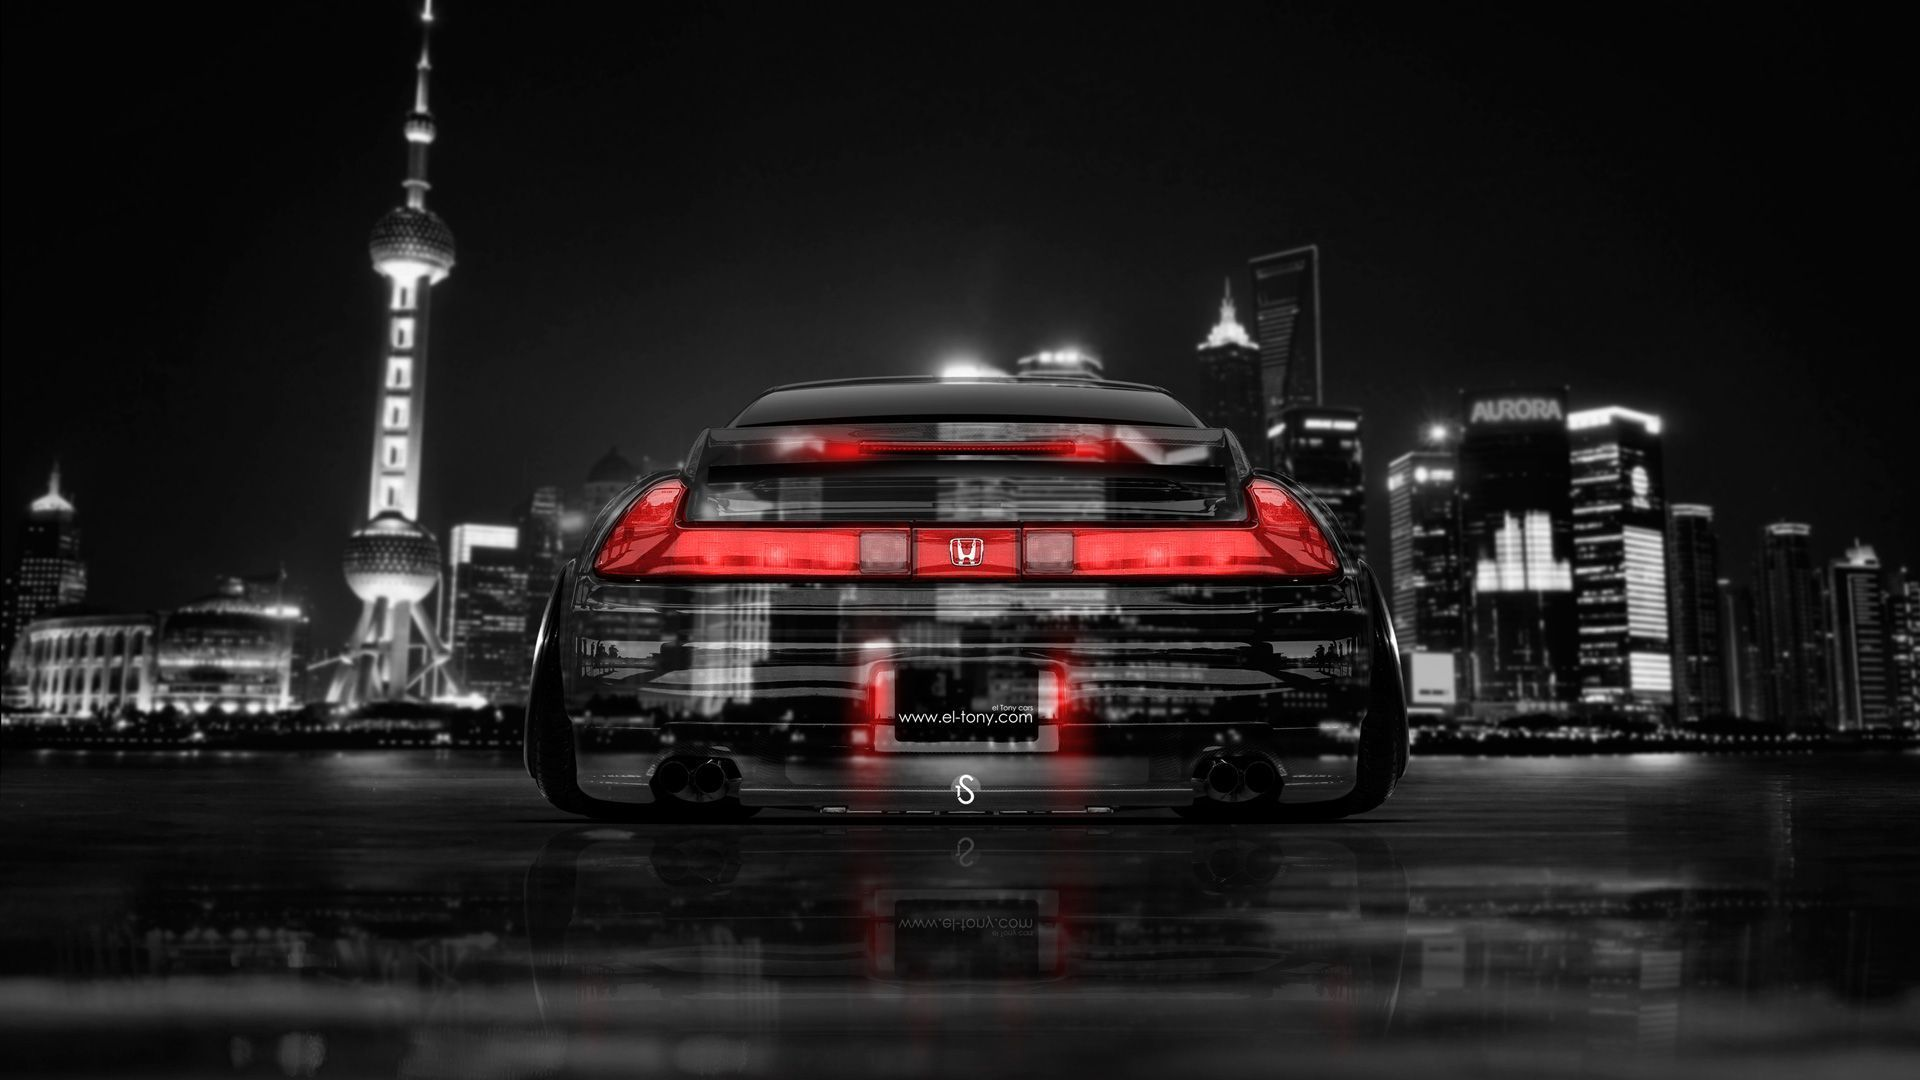 Exceptionnel Honda NSX JDM Back Crystal City Car 2014 « El Tony